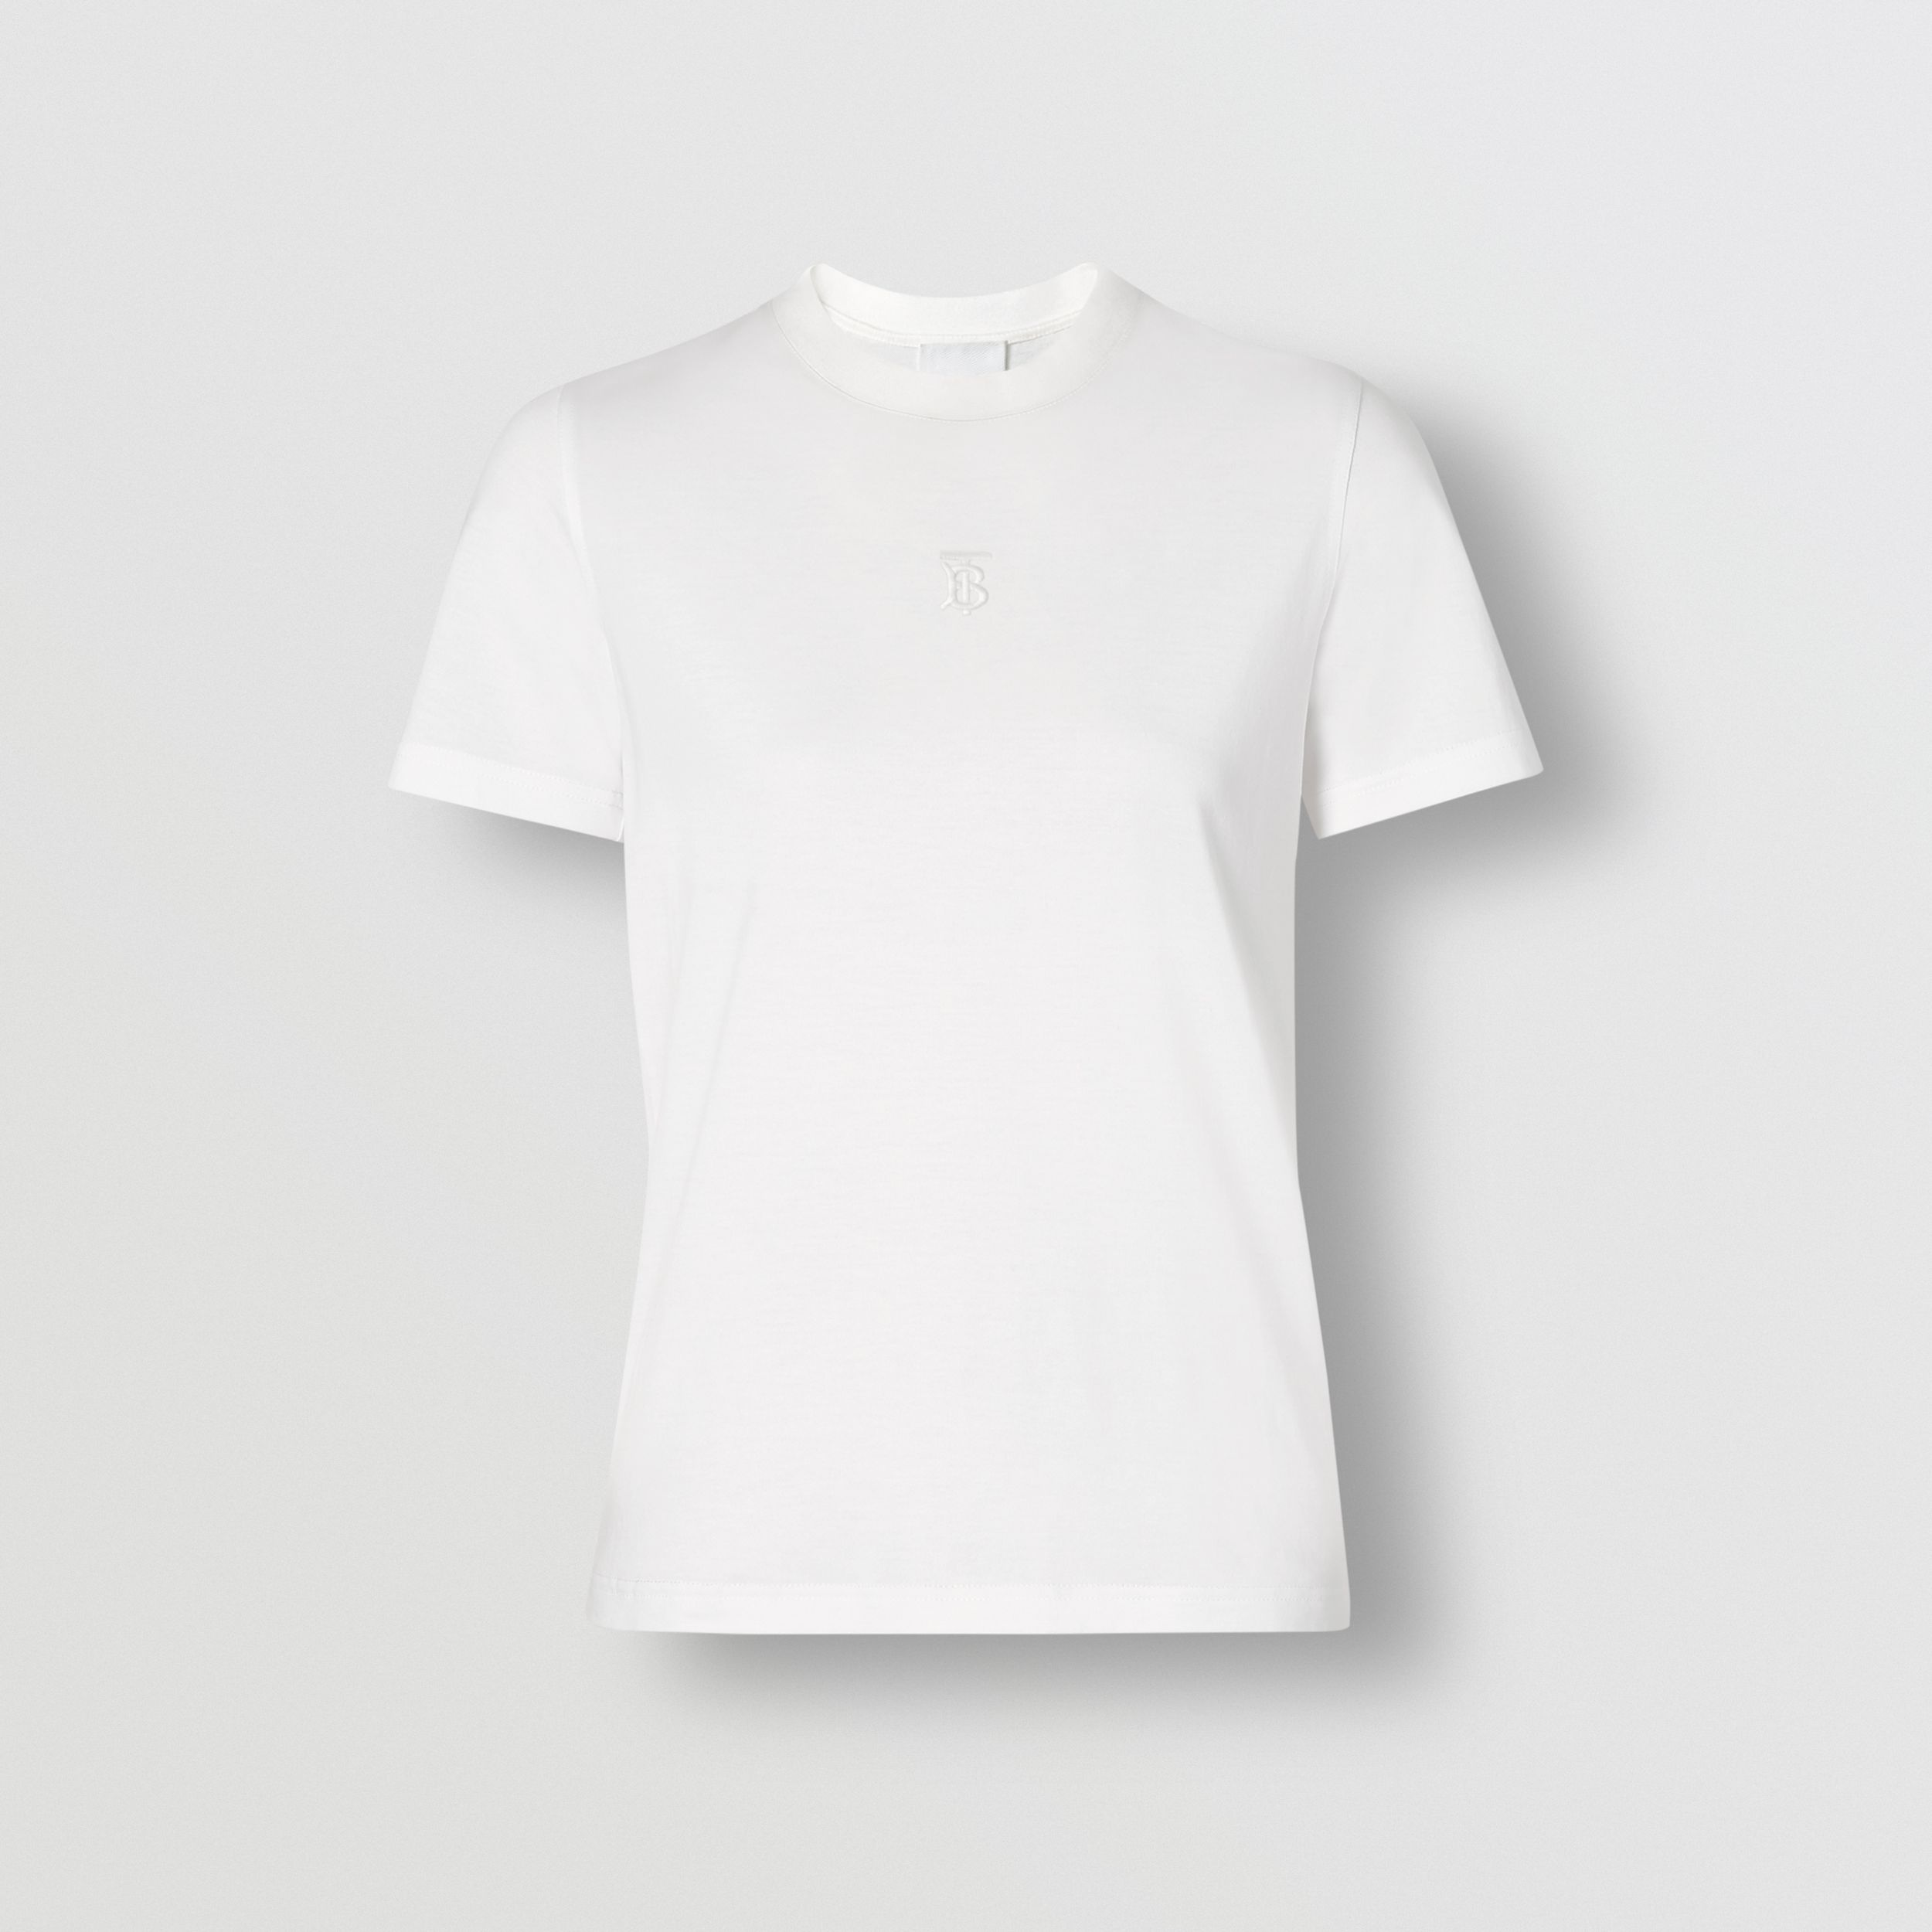 Monogram Motif Cotton T-shirt in White - Women | Burberry Australia - 4